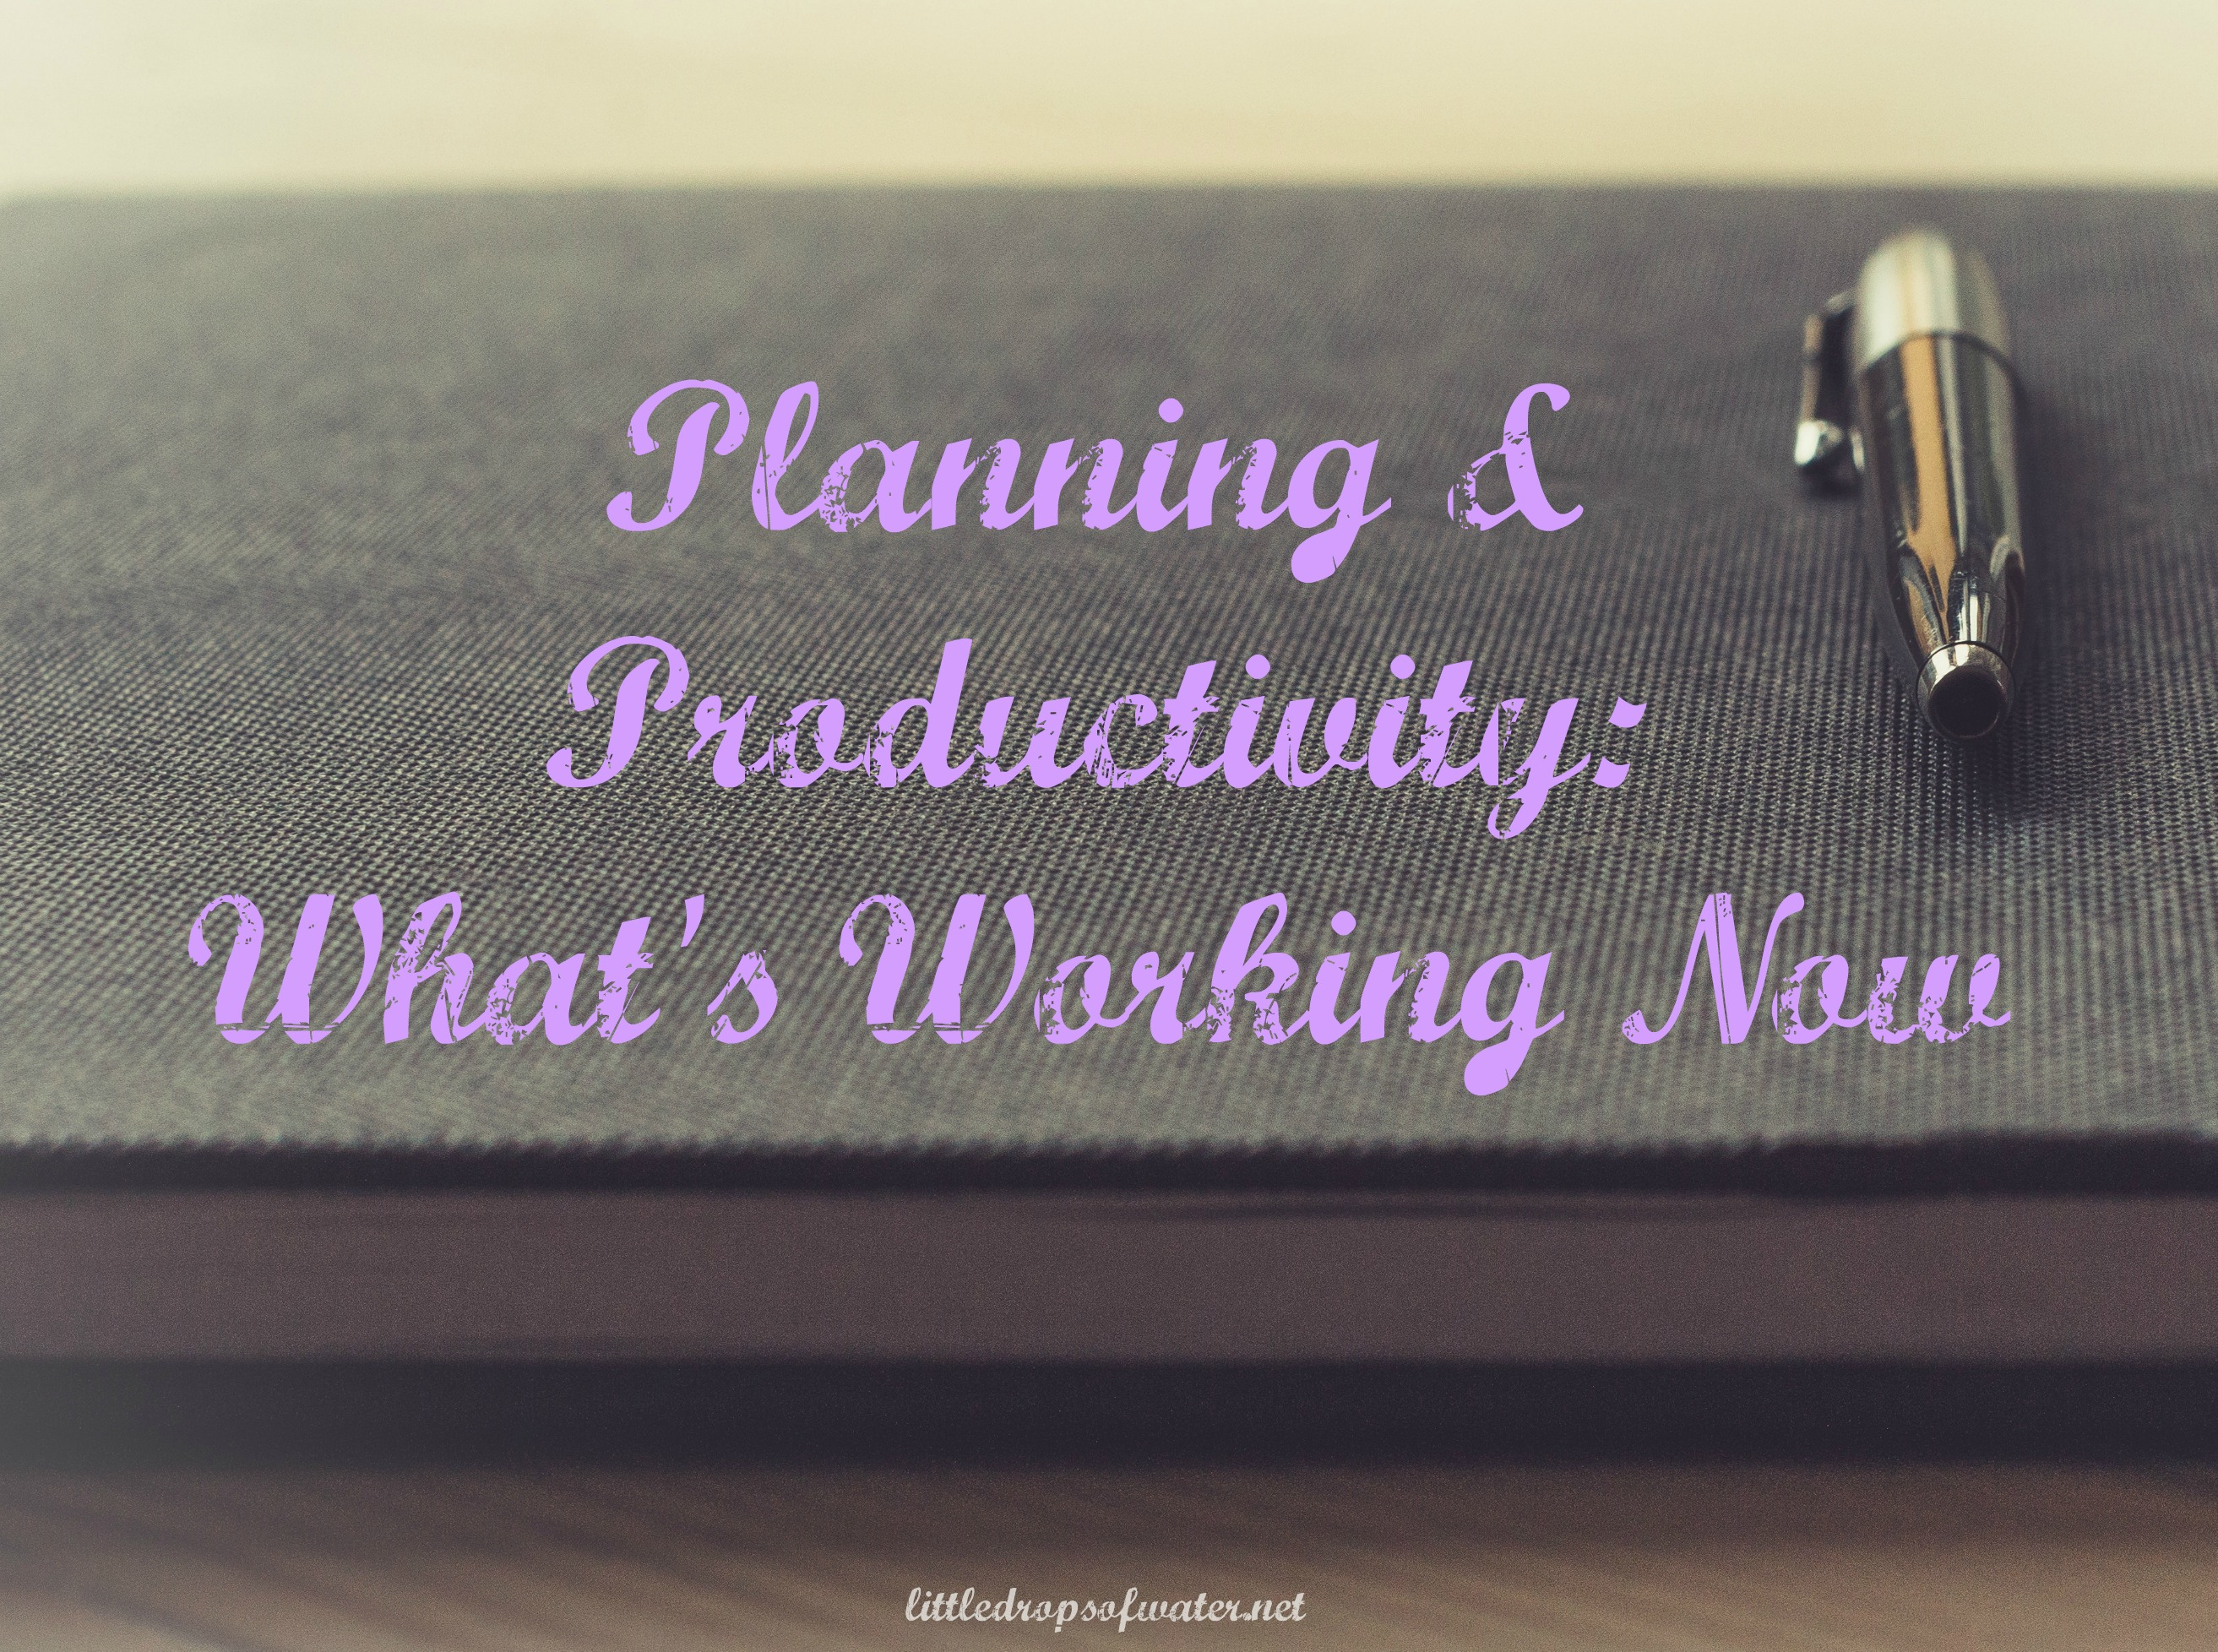 Planning & Productivity: What's Working Now